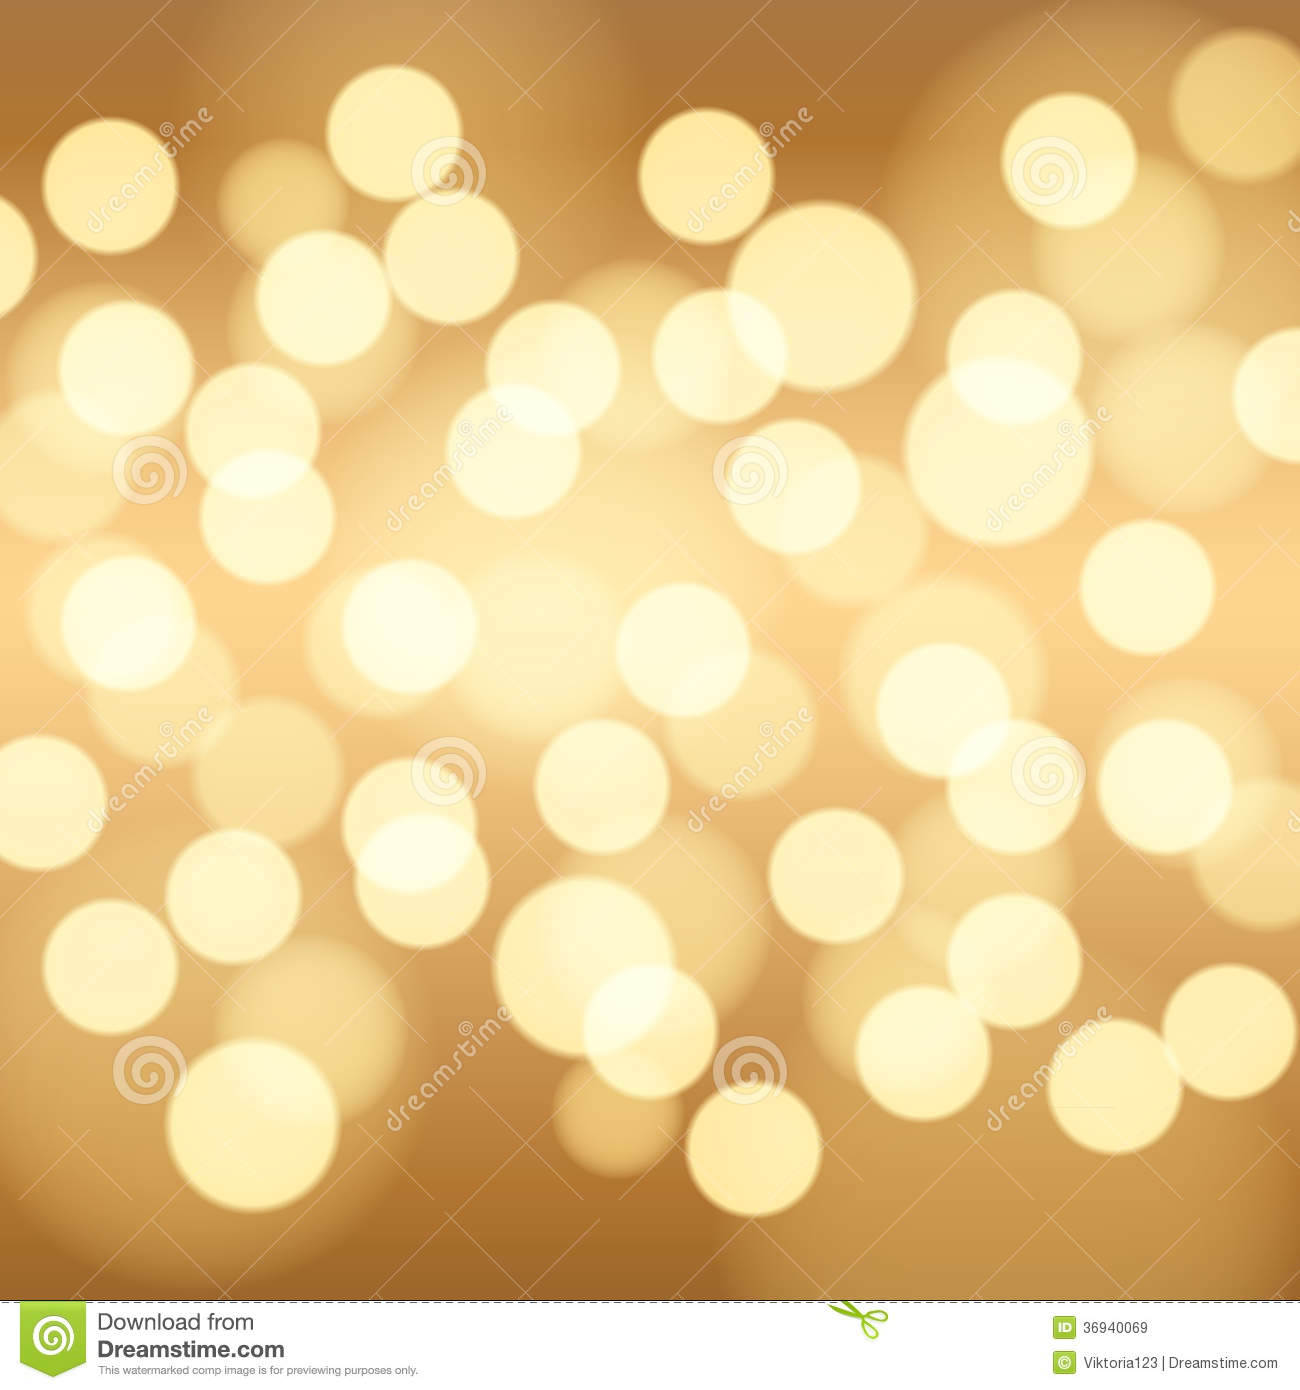 Gold Bokeh Background. Royalty Free Stock Images - Image: 36940069: www.dreamstime.com/royalty-free-stock-images-gold-bokeh-background...